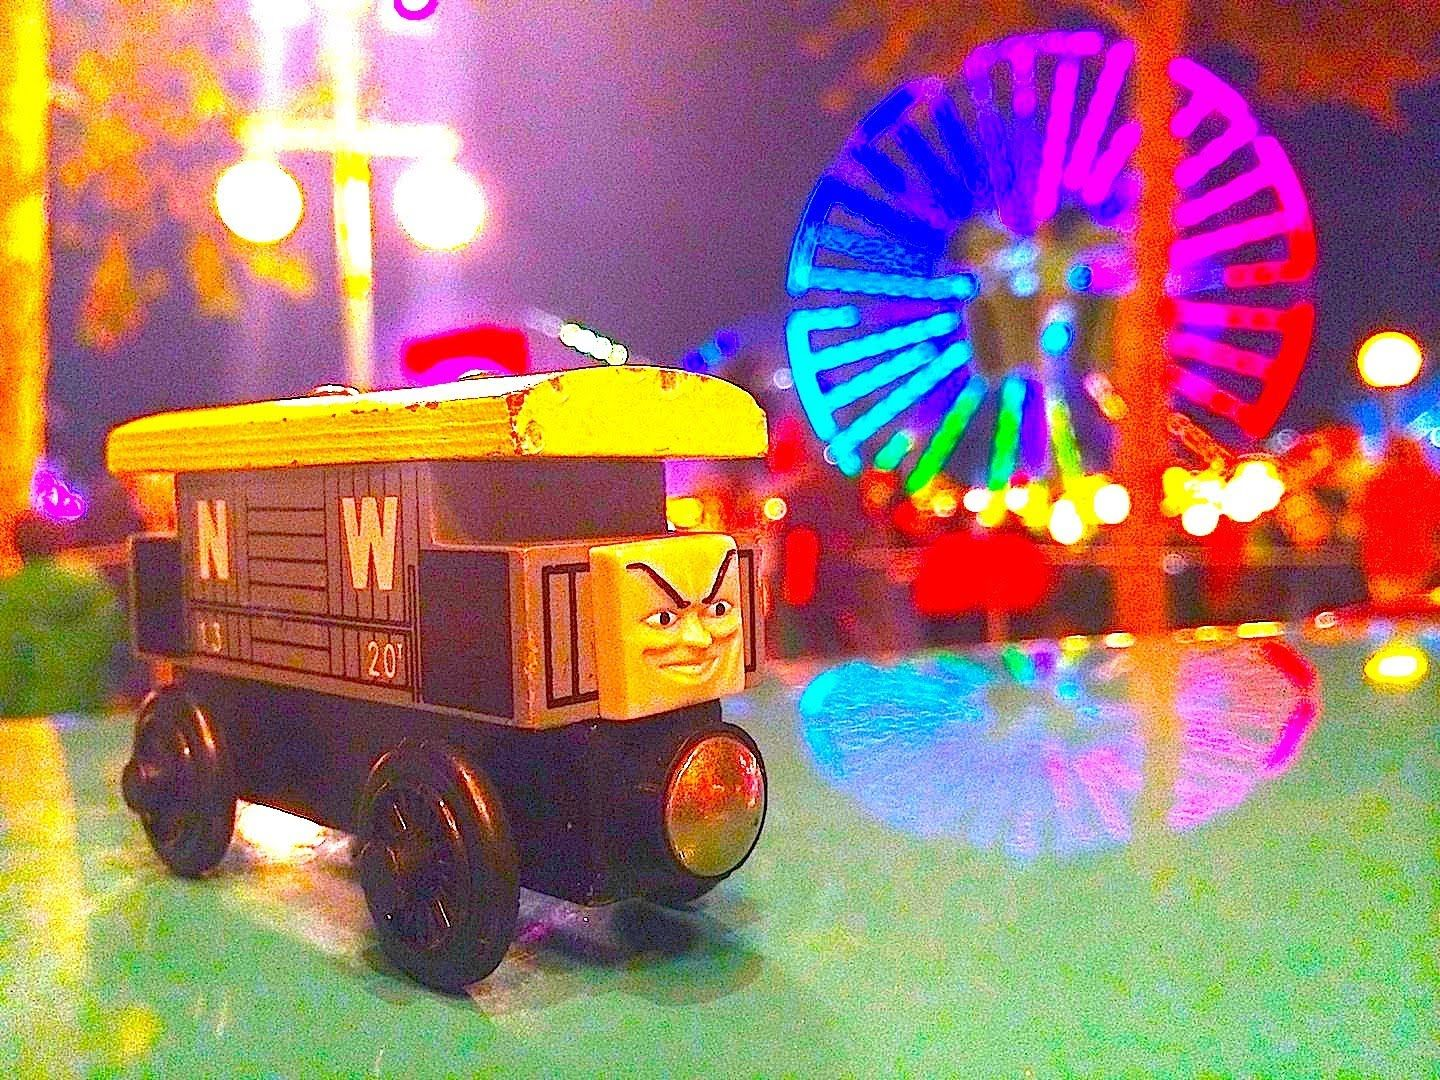 NW Brakevan Review